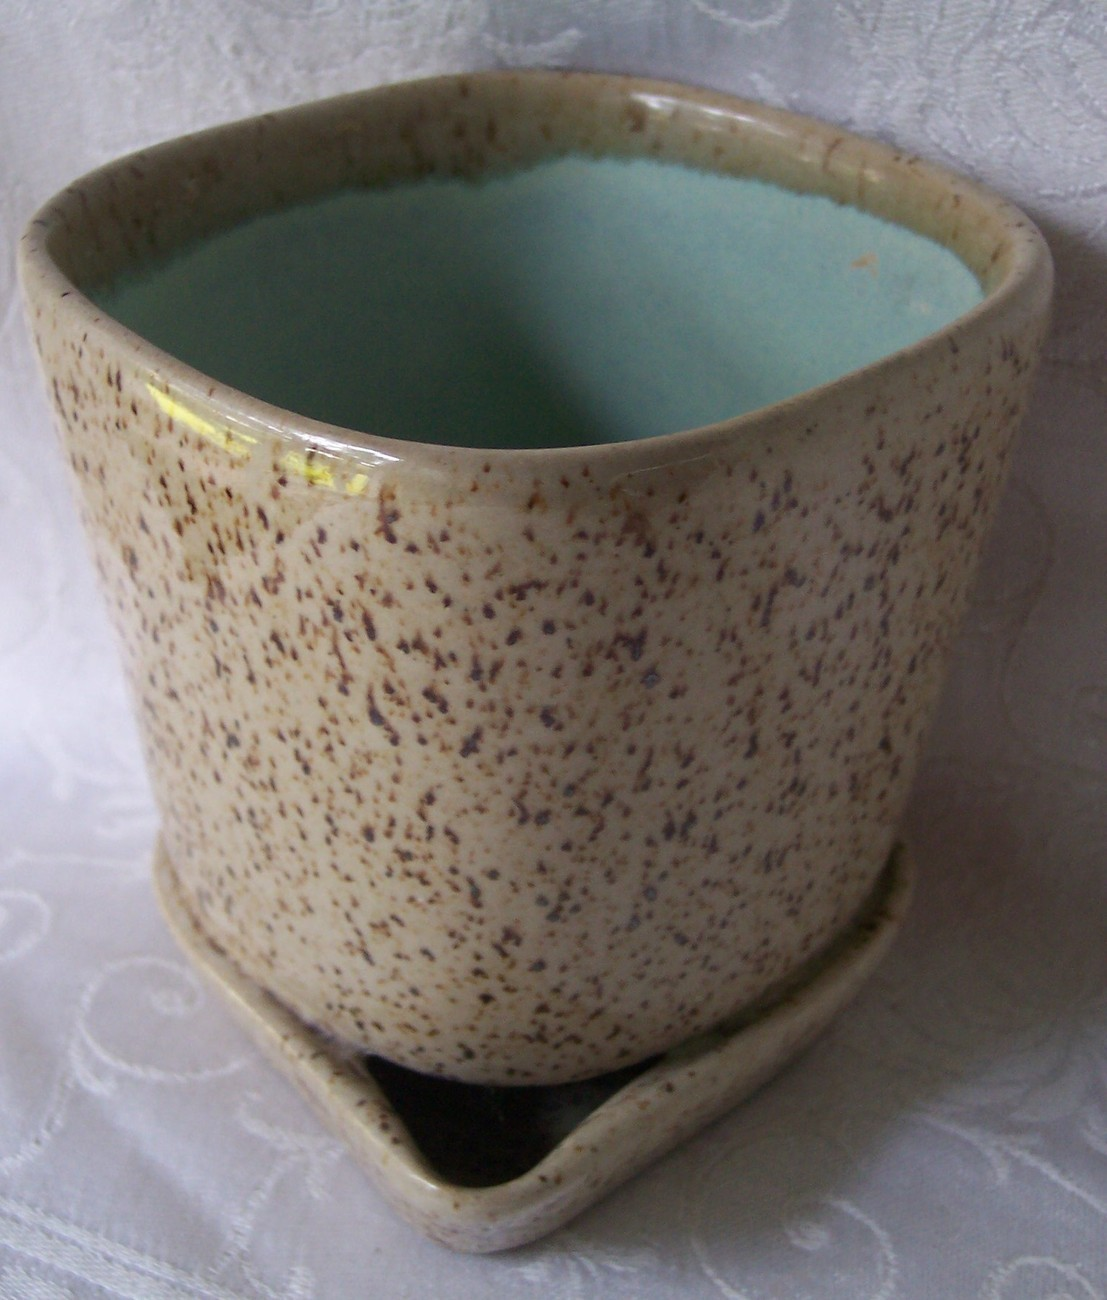 Glidden_art_pottery_planter_brown_speckled_truquoise3